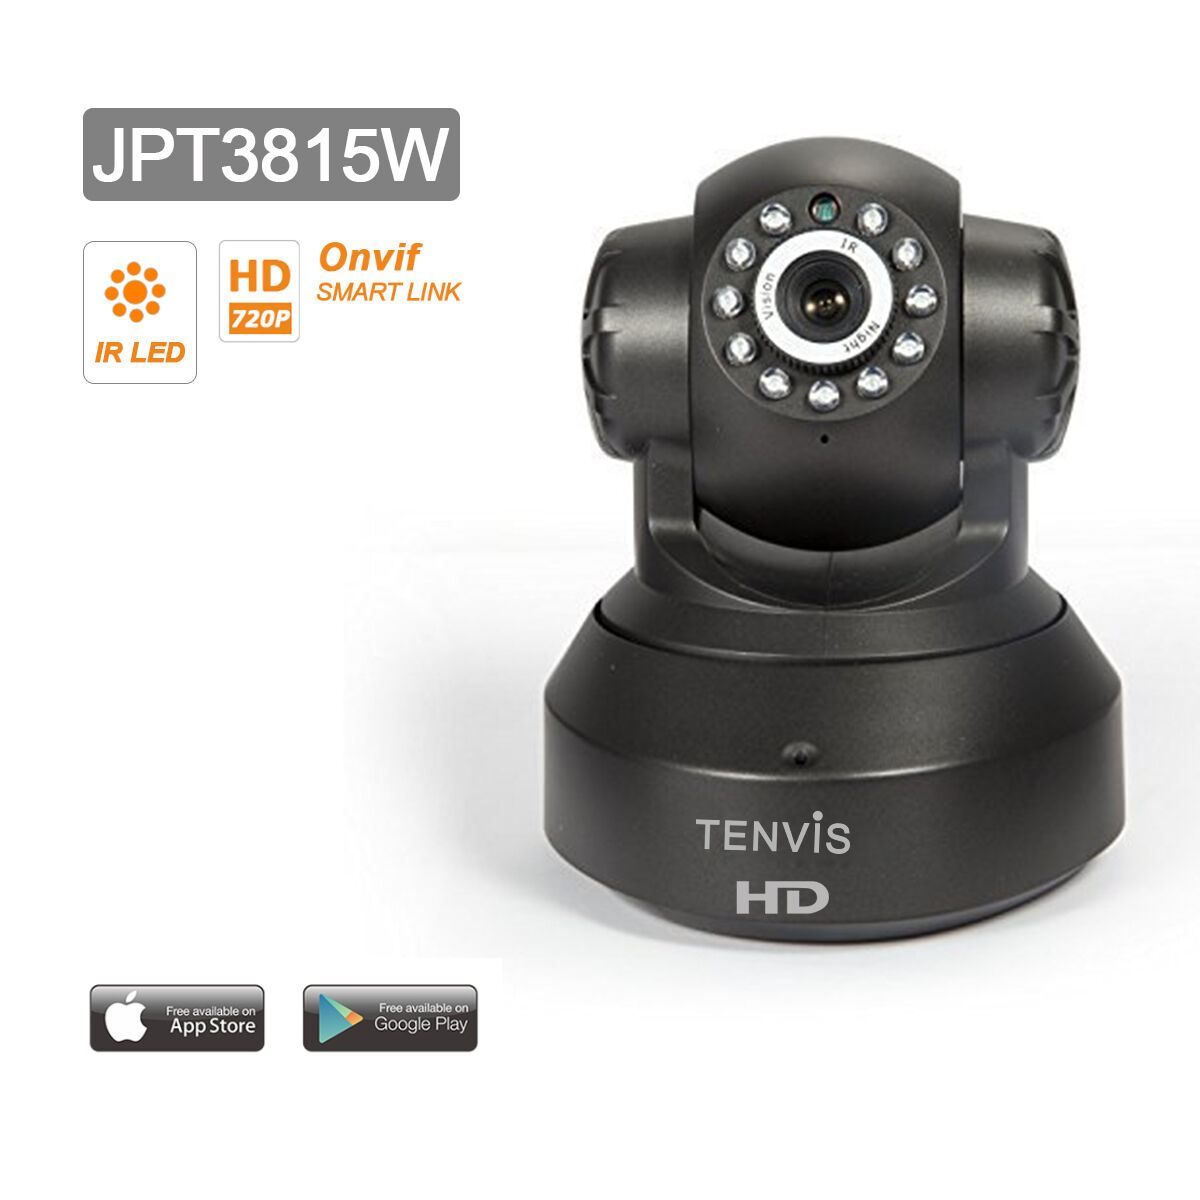 tenvis jpt3815w cctv pt ip cam ra de surveillance infrarouge wifi sans fil noir. Black Bedroom Furniture Sets. Home Design Ideas